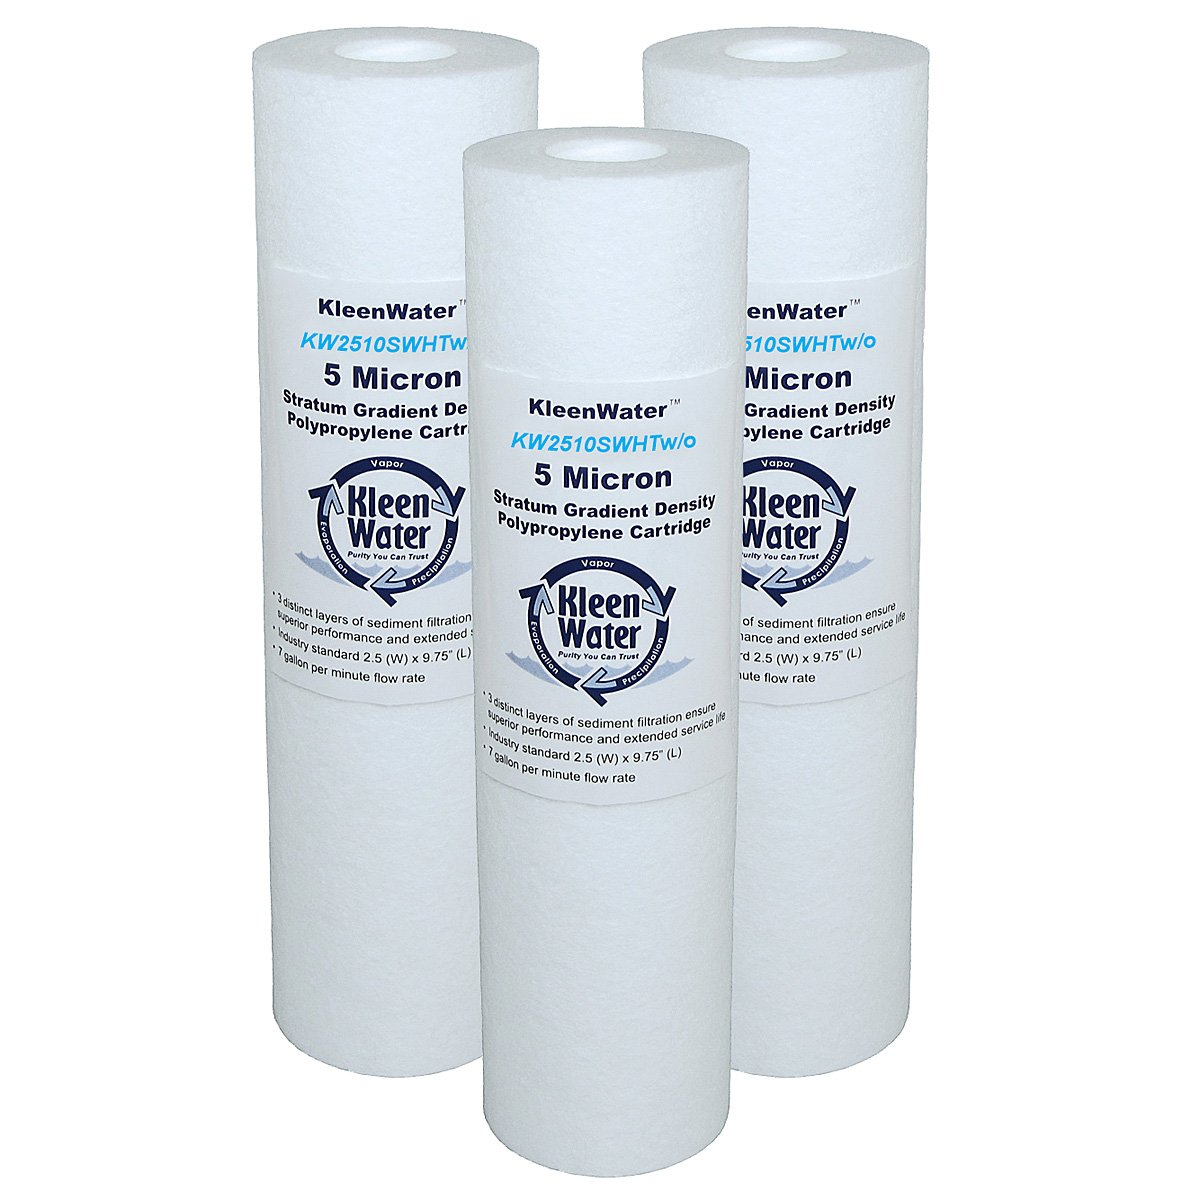 KleenWater KW2510SWHT Replacement High Temperature Polypropylene Filter Cartridges, Dirt Rust Sediment Filtration, No Scale Inhibitor, Set of 3